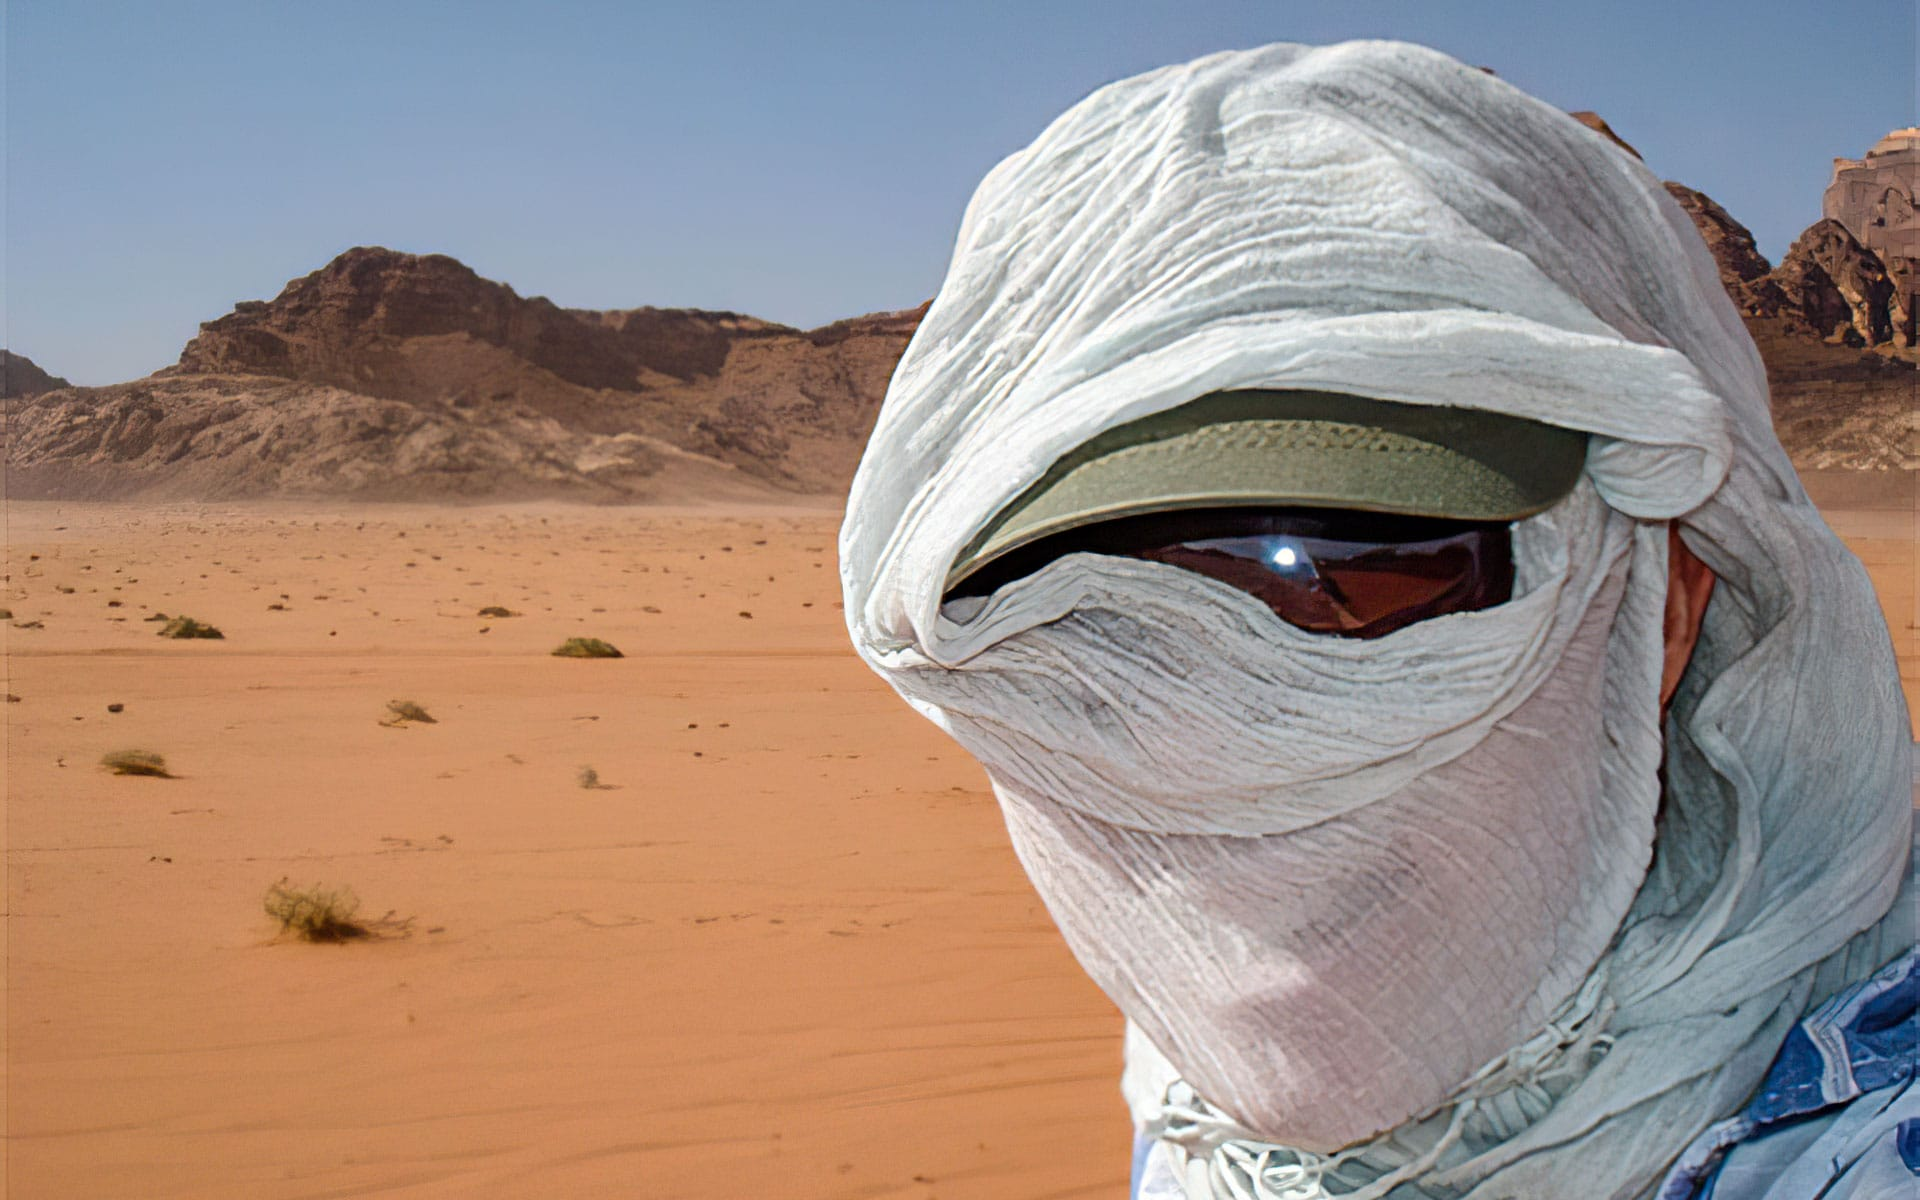 Nikki Hodgson showing how to blend in when traveling in Jordan